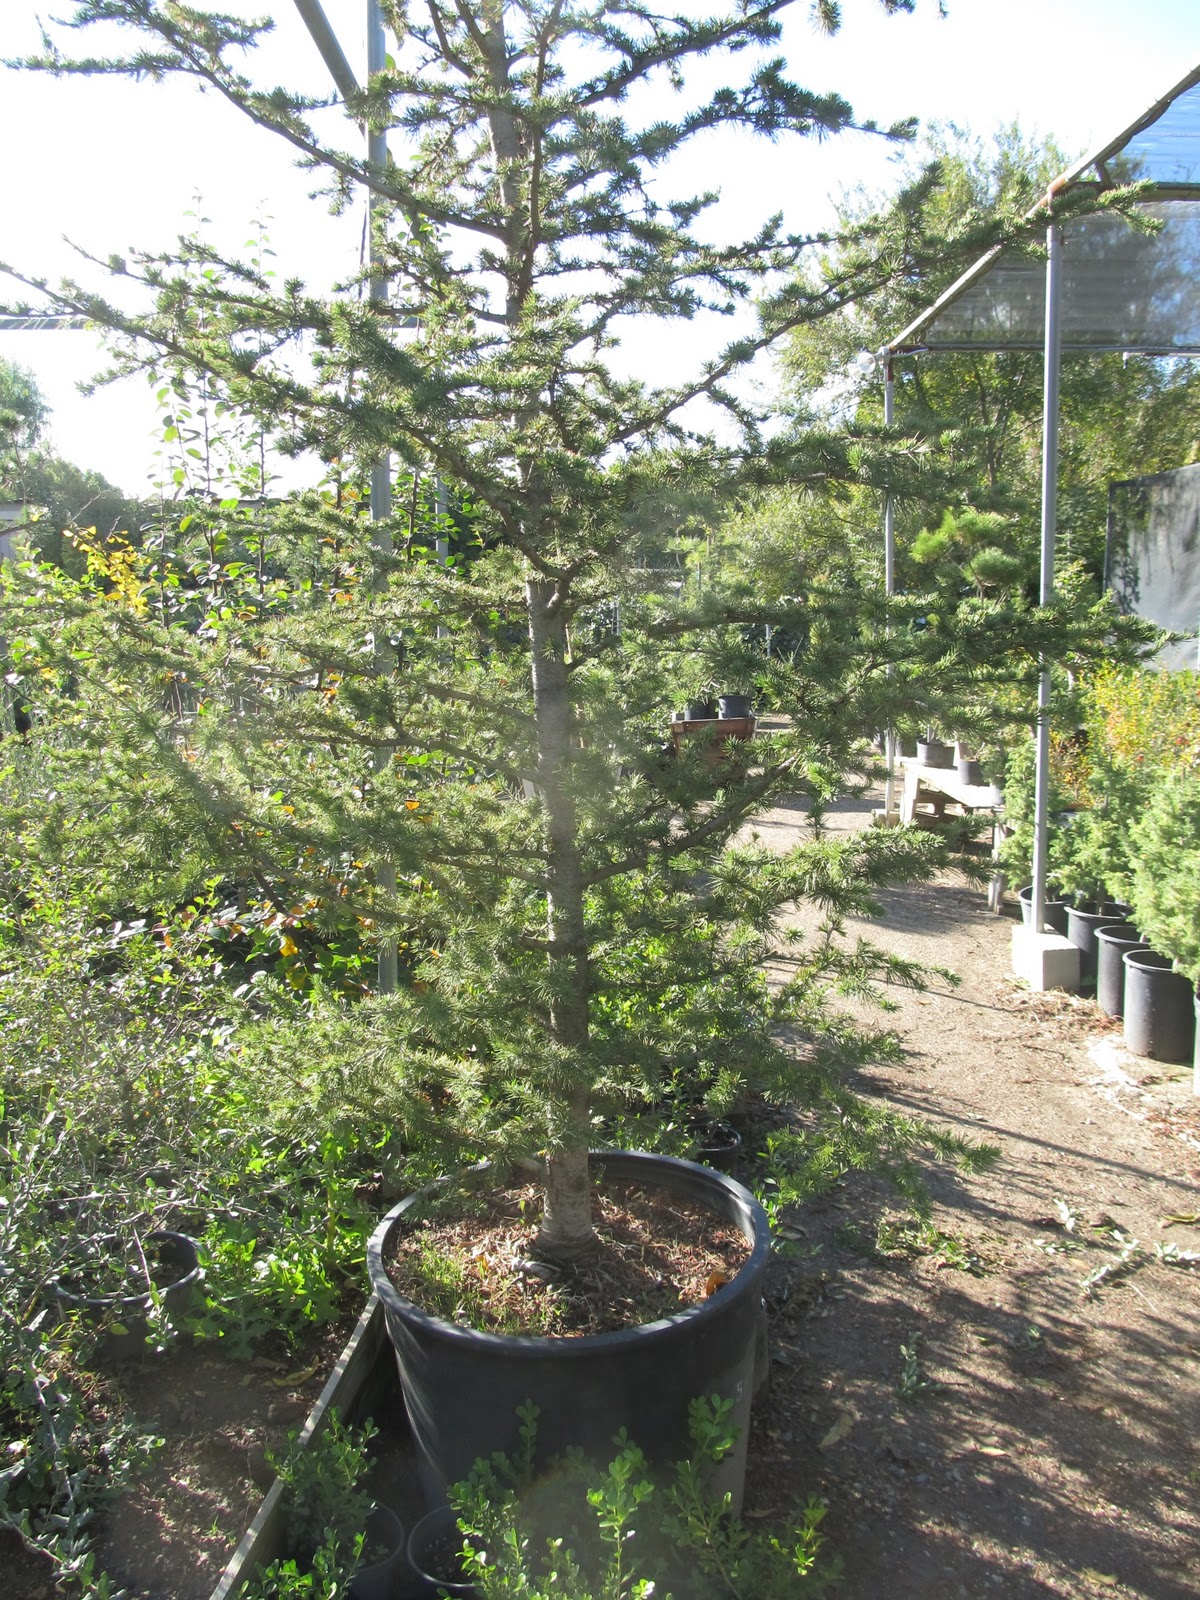 Some Of What I Saw In Bonsai So To That End Went Searching Through The Nursery Here Is Found It S A 16 Tall Atlas Cedar 24 Tub